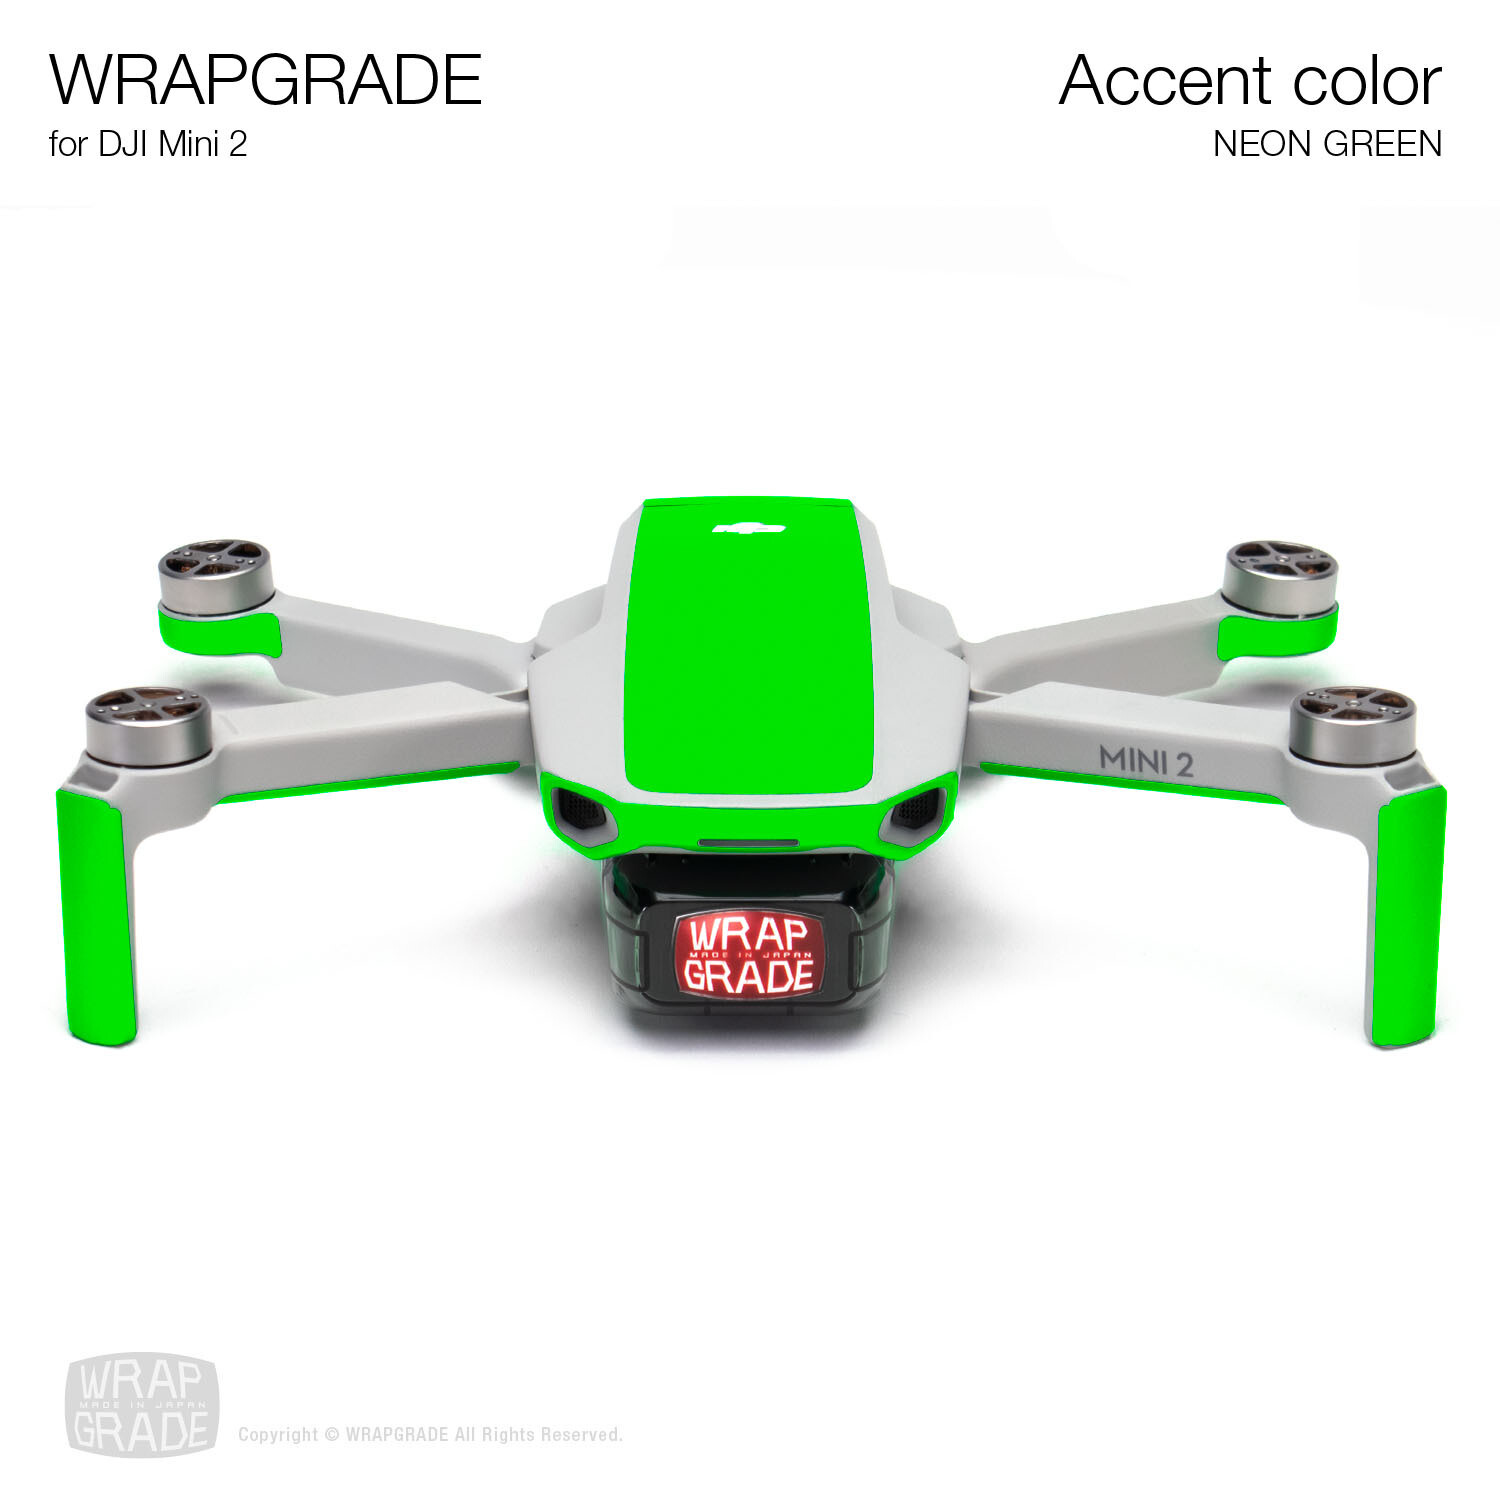 Wrapgrade Poly Skin for DJI Mini 2 | Accent color (NEON GREEN)